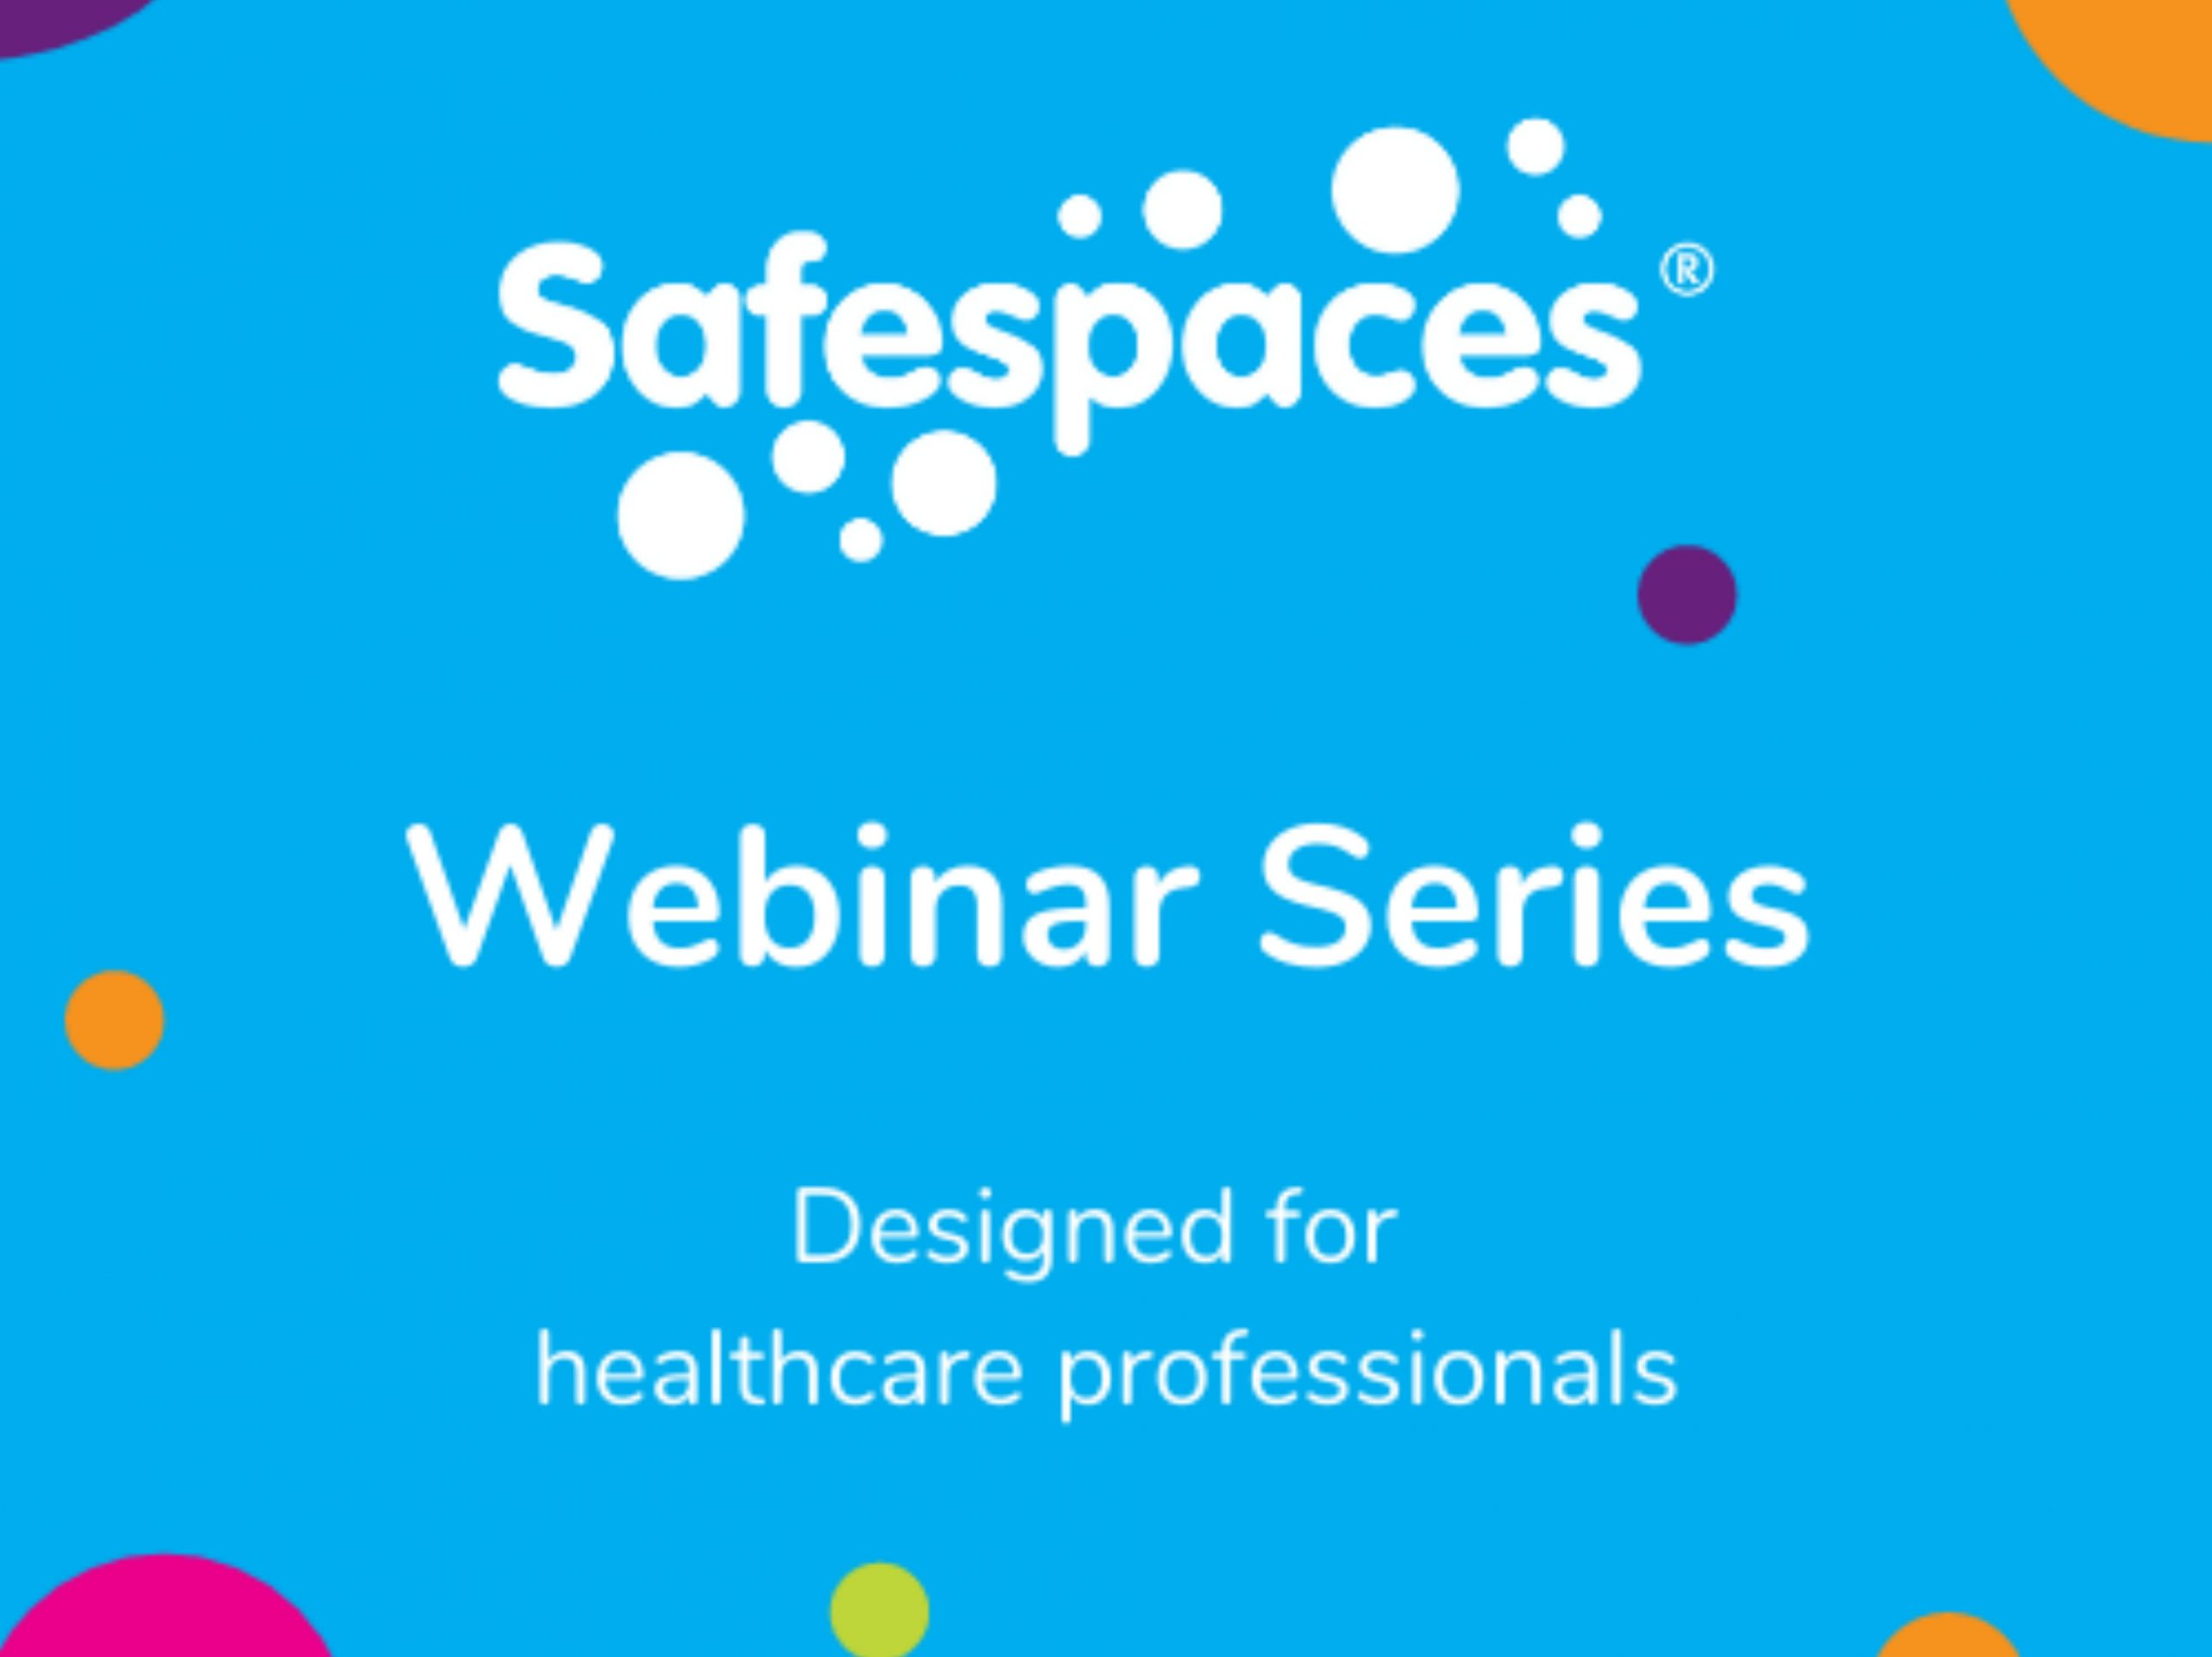 New Webinar Series Launched for Healthcare Professionals